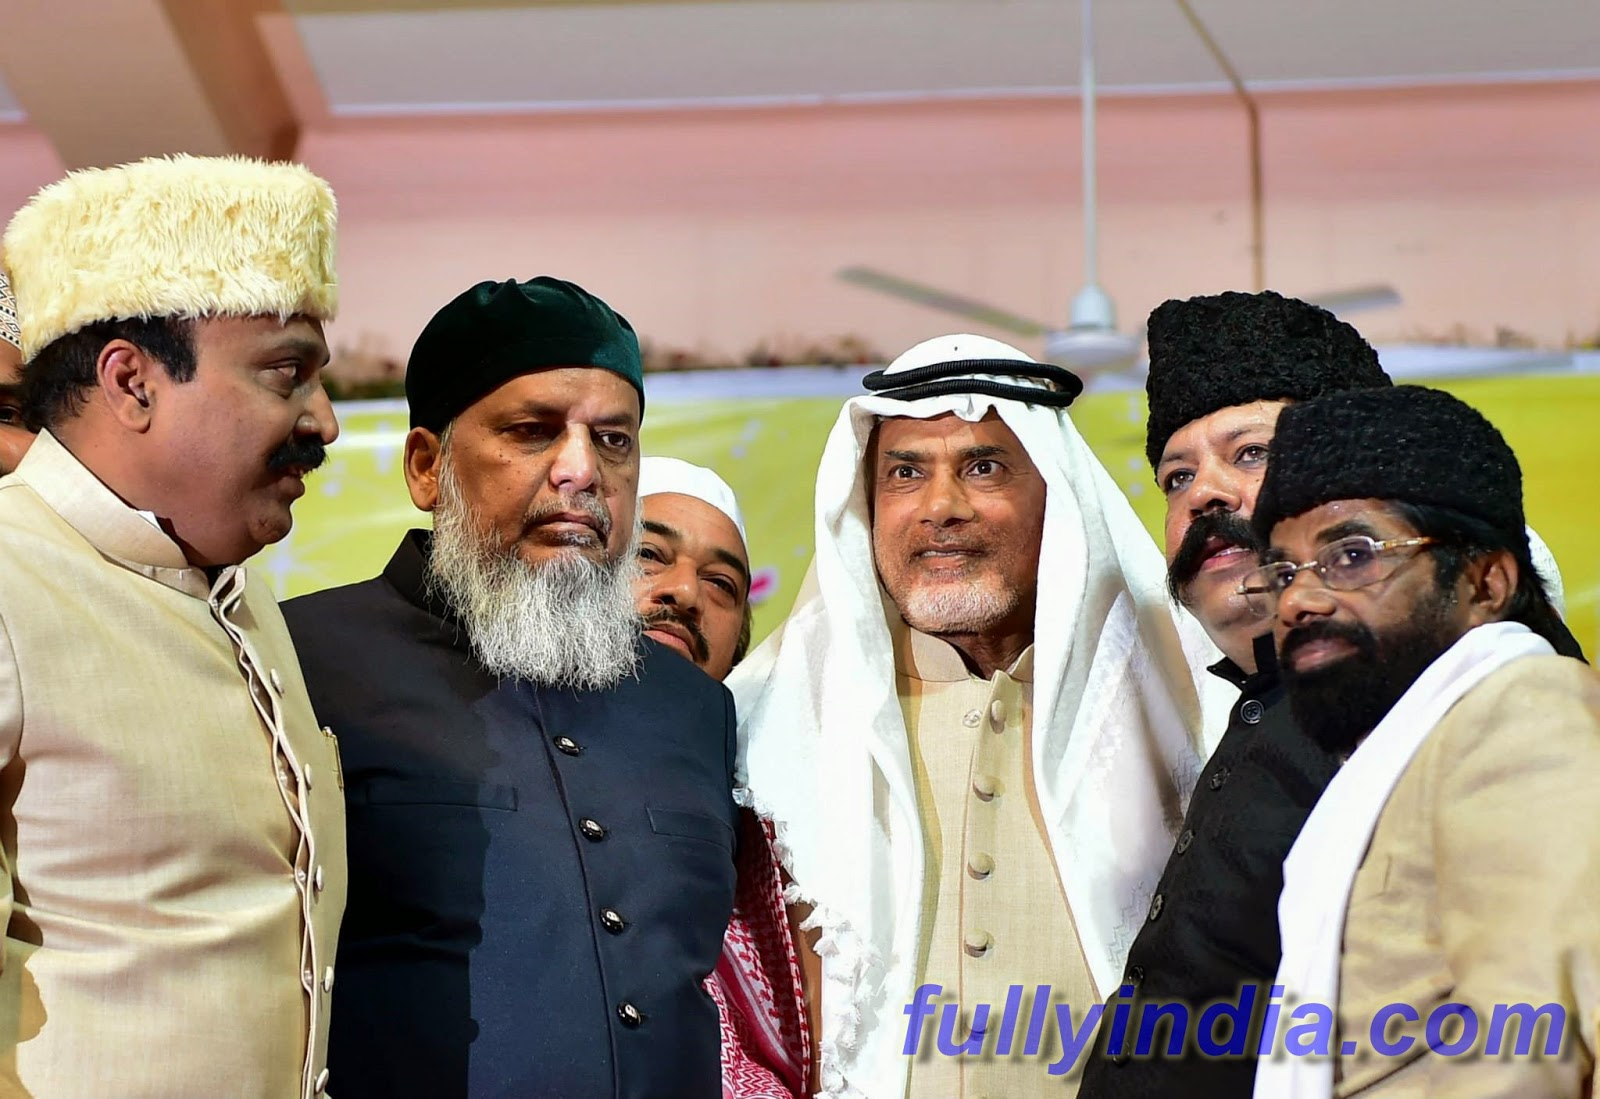 Andhra-Pradesh-Chief-Minister-at-Iftar-Party-in-Hyderabad